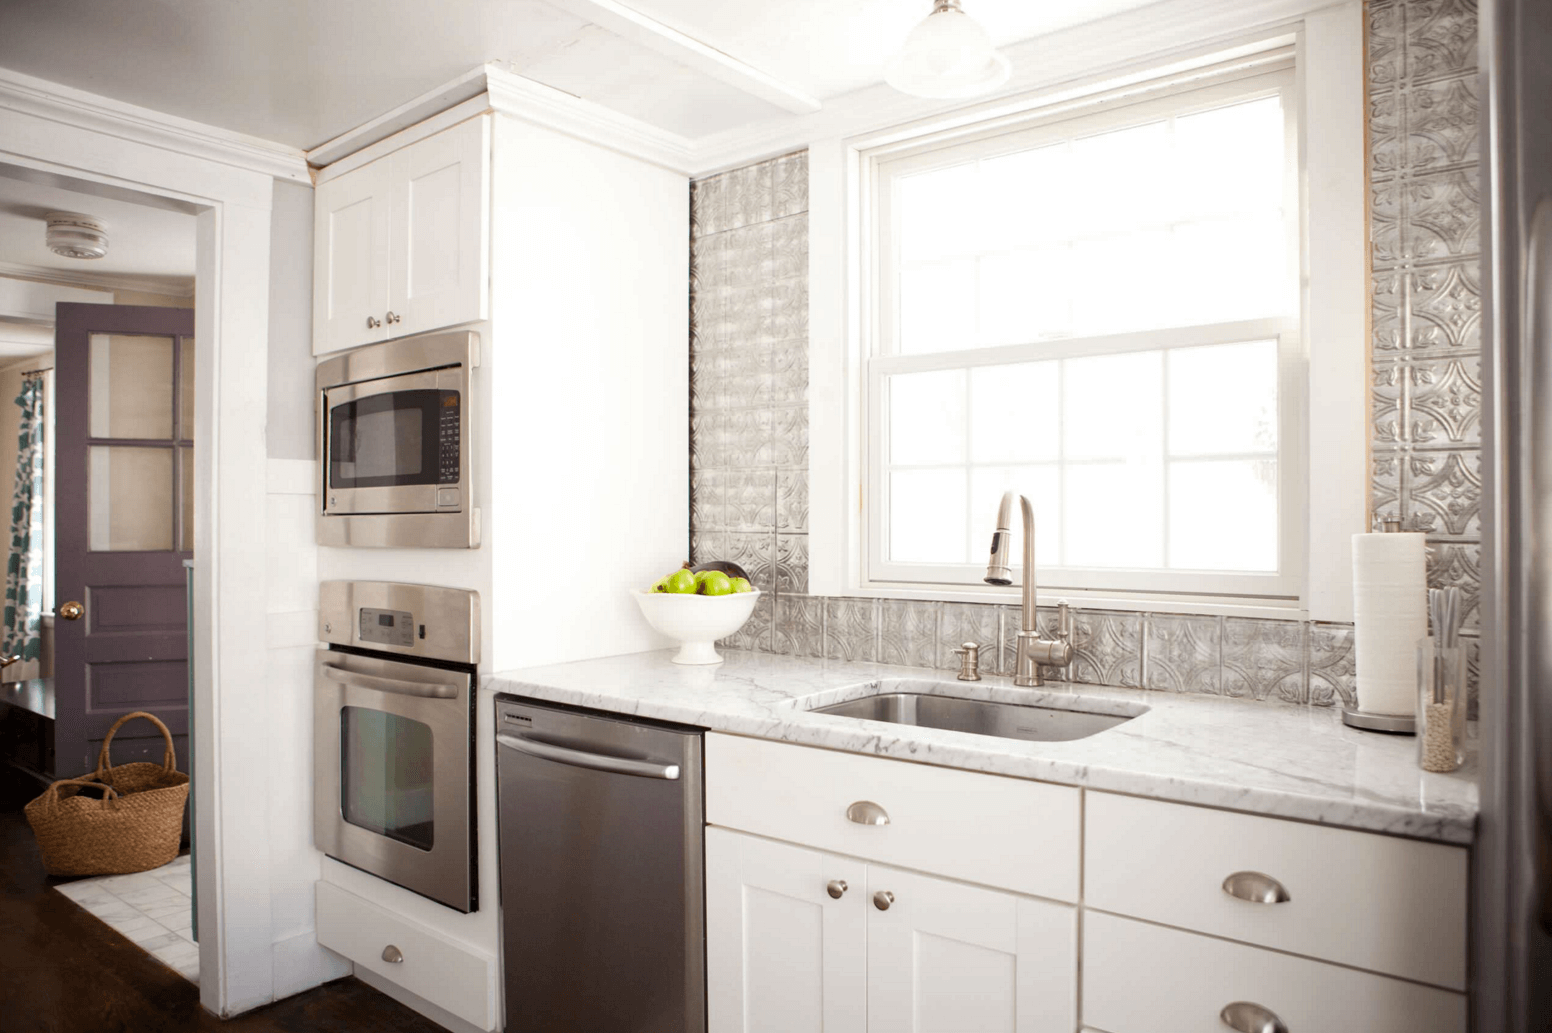 - 5 Ways To Redo Kitchen Backsplash (Without Tearing It Out) (With